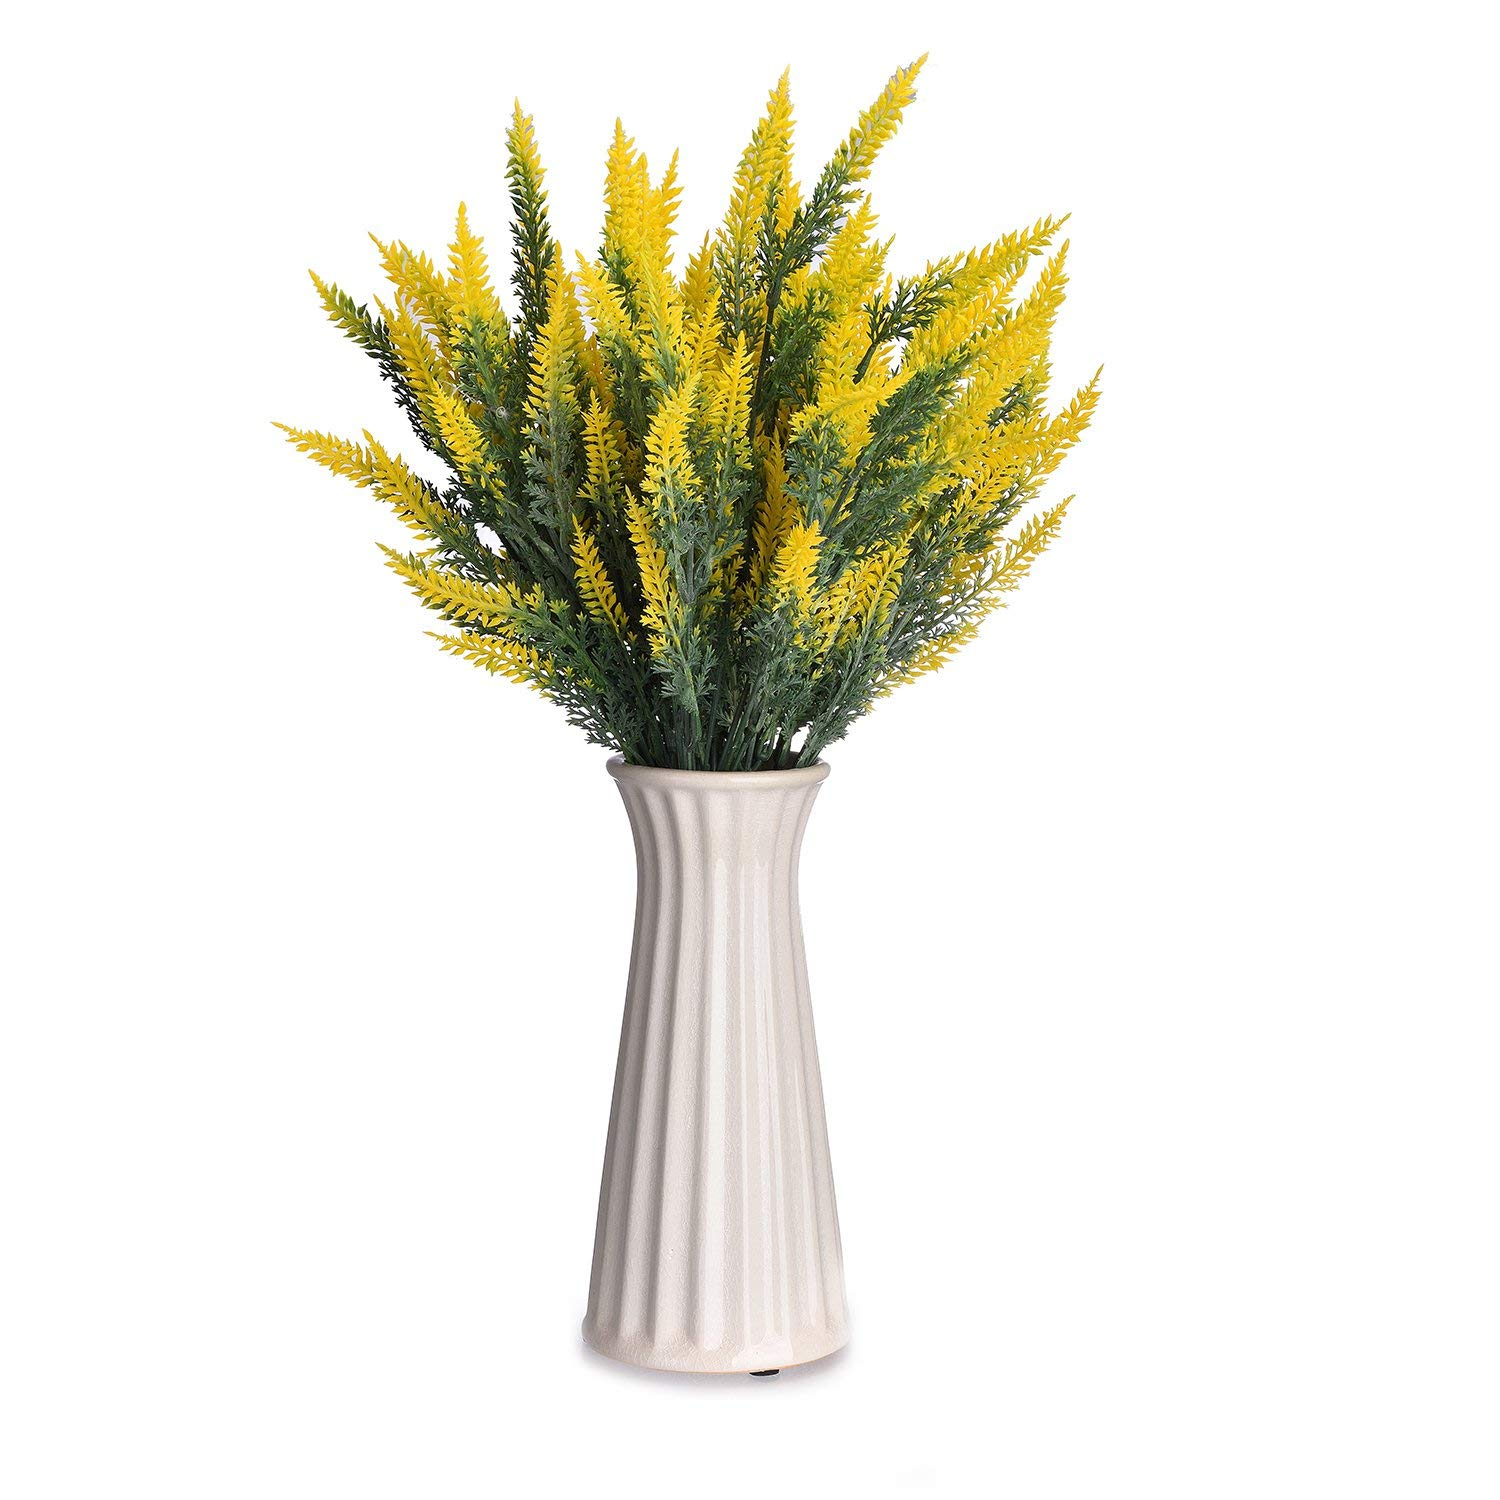 Artificial Lavender Flowers,TtoyouU 4pcs Bundles Artificial Flocked Lavender Flowers Bouquet Arrangements Wedding Garden Office Home Decoration (Yellow)